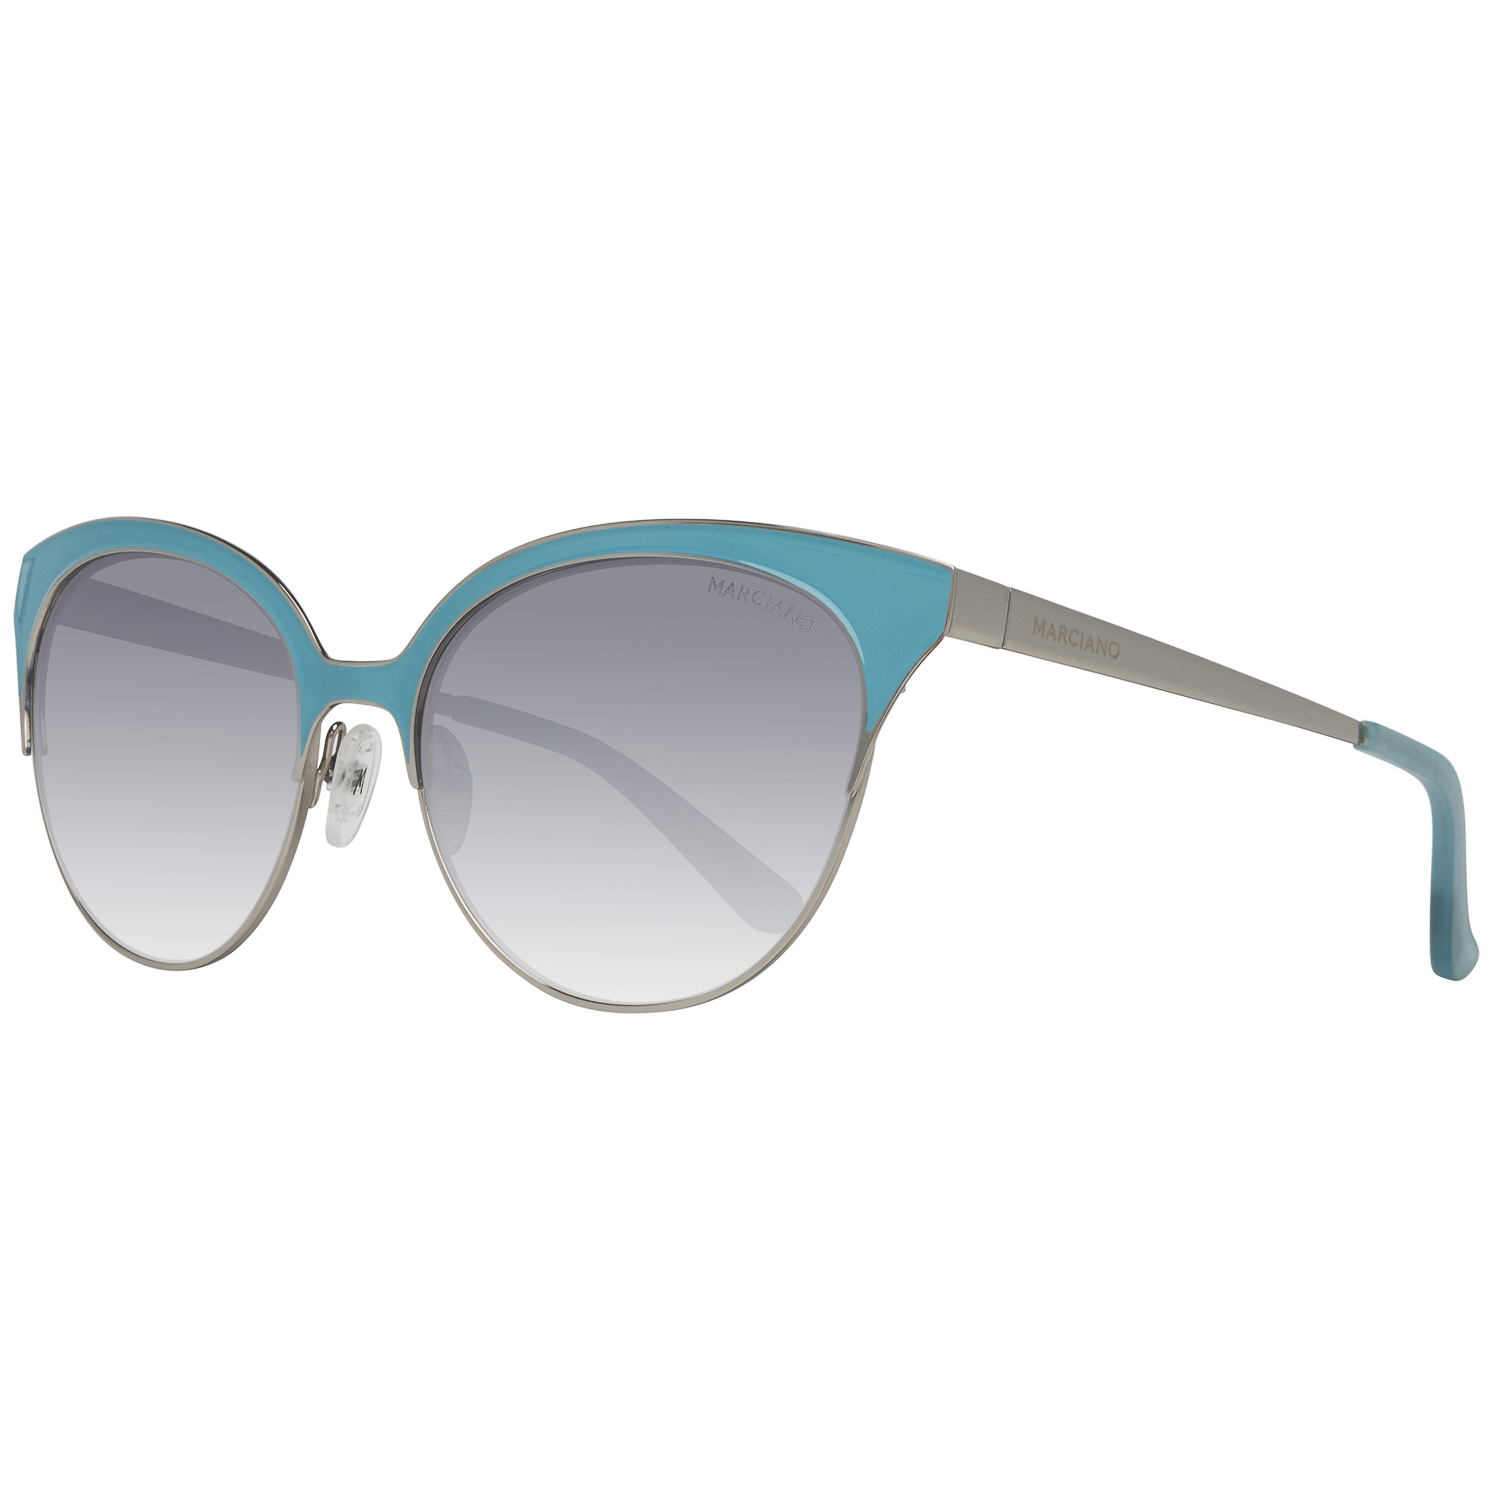 Guess by Marciano Sunglasses GM0751 5684C Silver